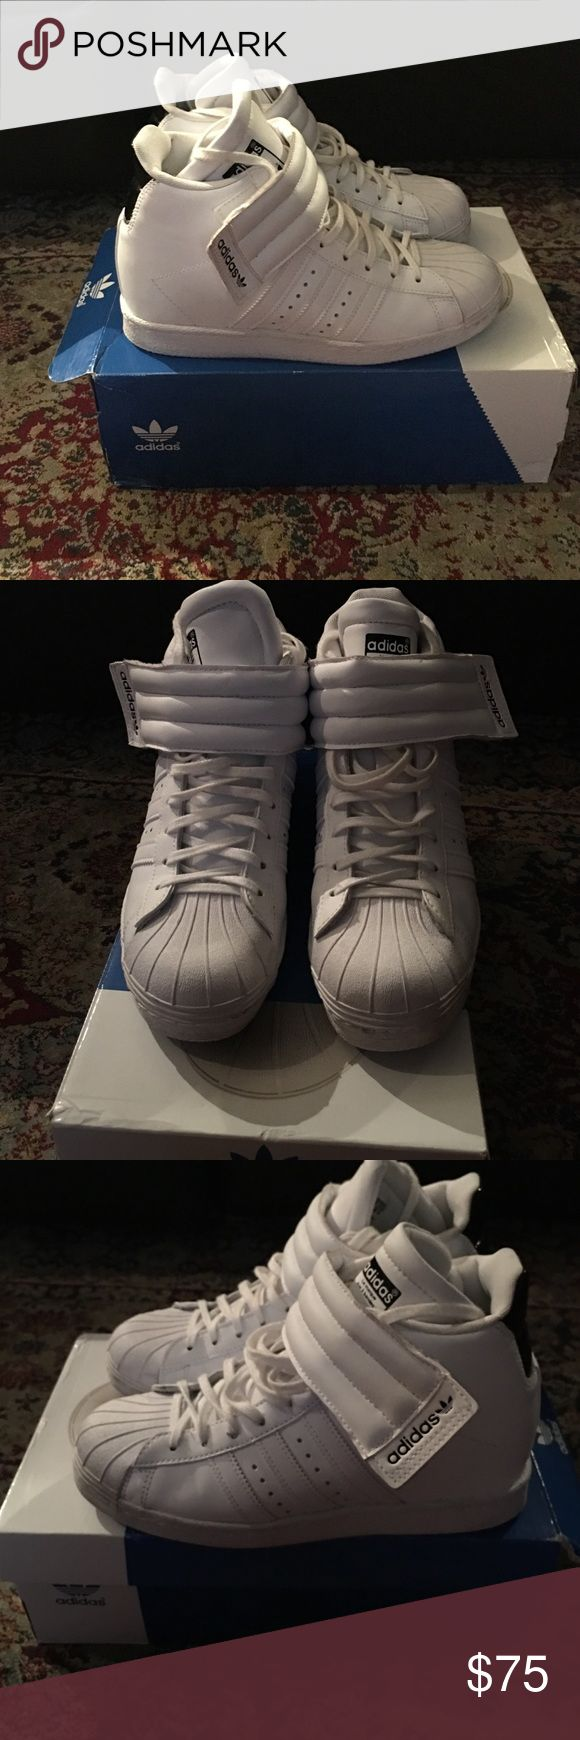 Adidas Superstar W/ Strap White Adidas Superstar Wedges NWB Size 8 Adidas Shoes Sneakers